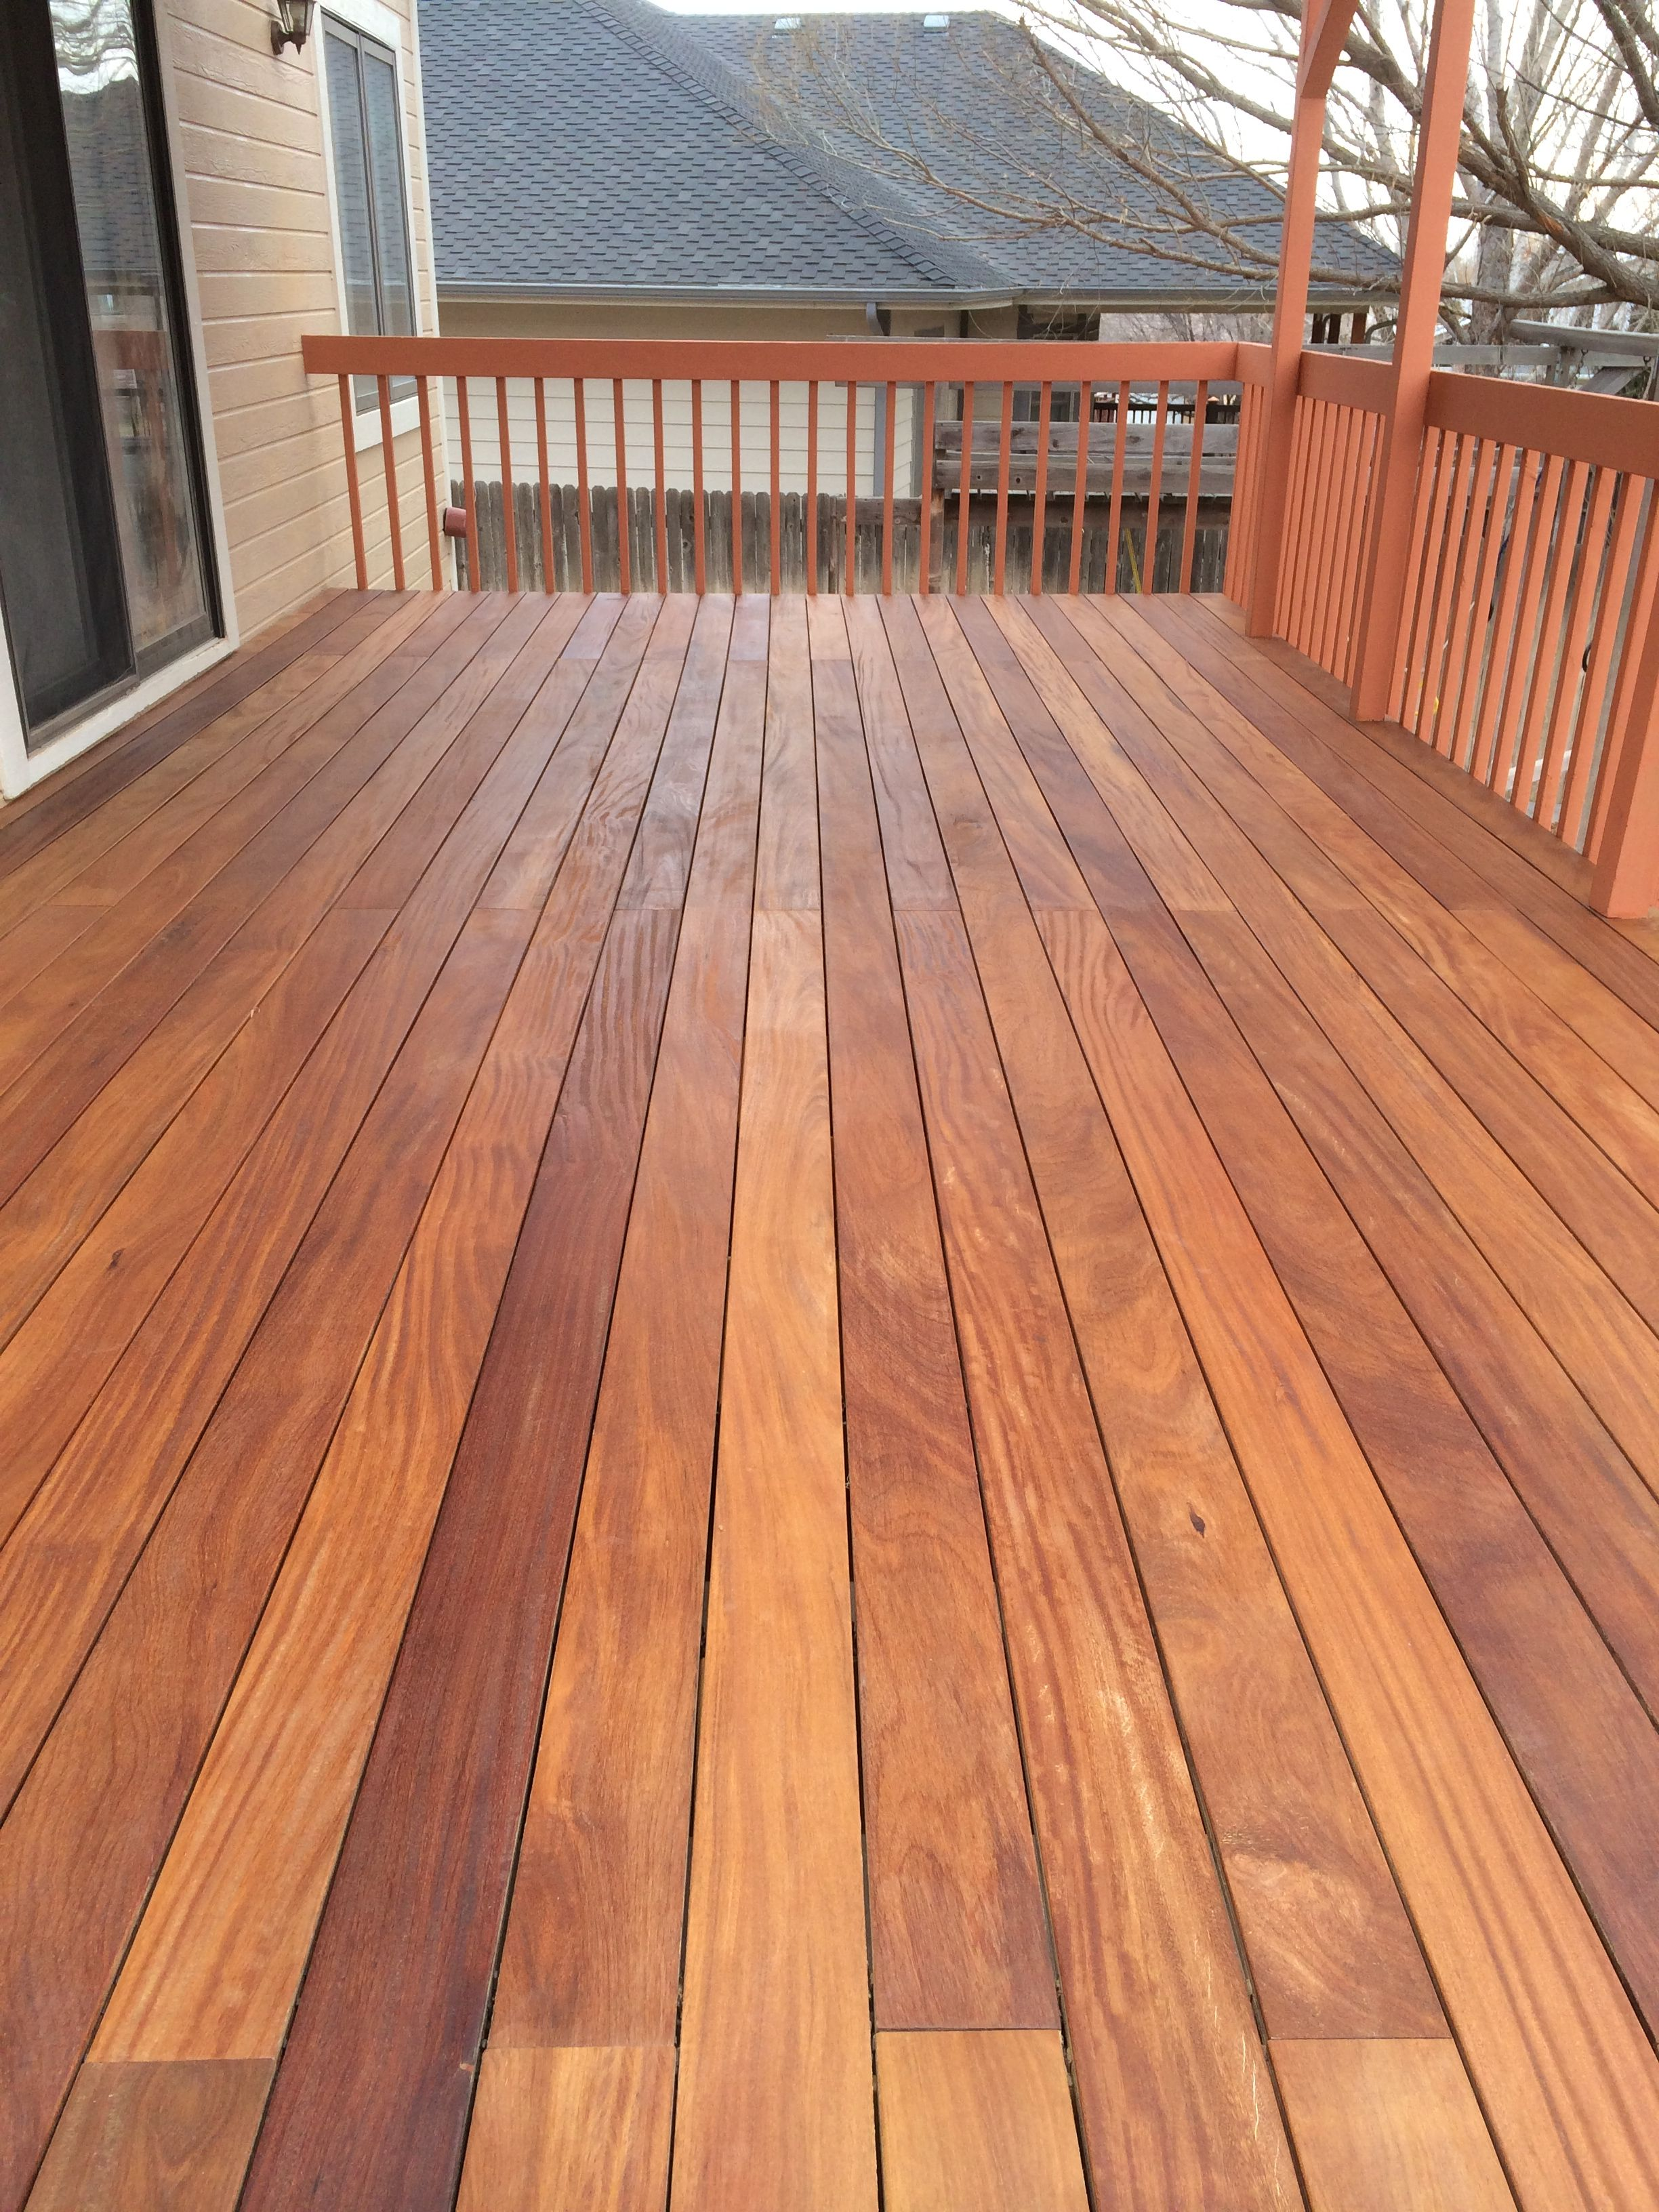 Ipe Deck Finish 5 Things Not To Do Deck Stain Colors Cool Deck Deck Colors